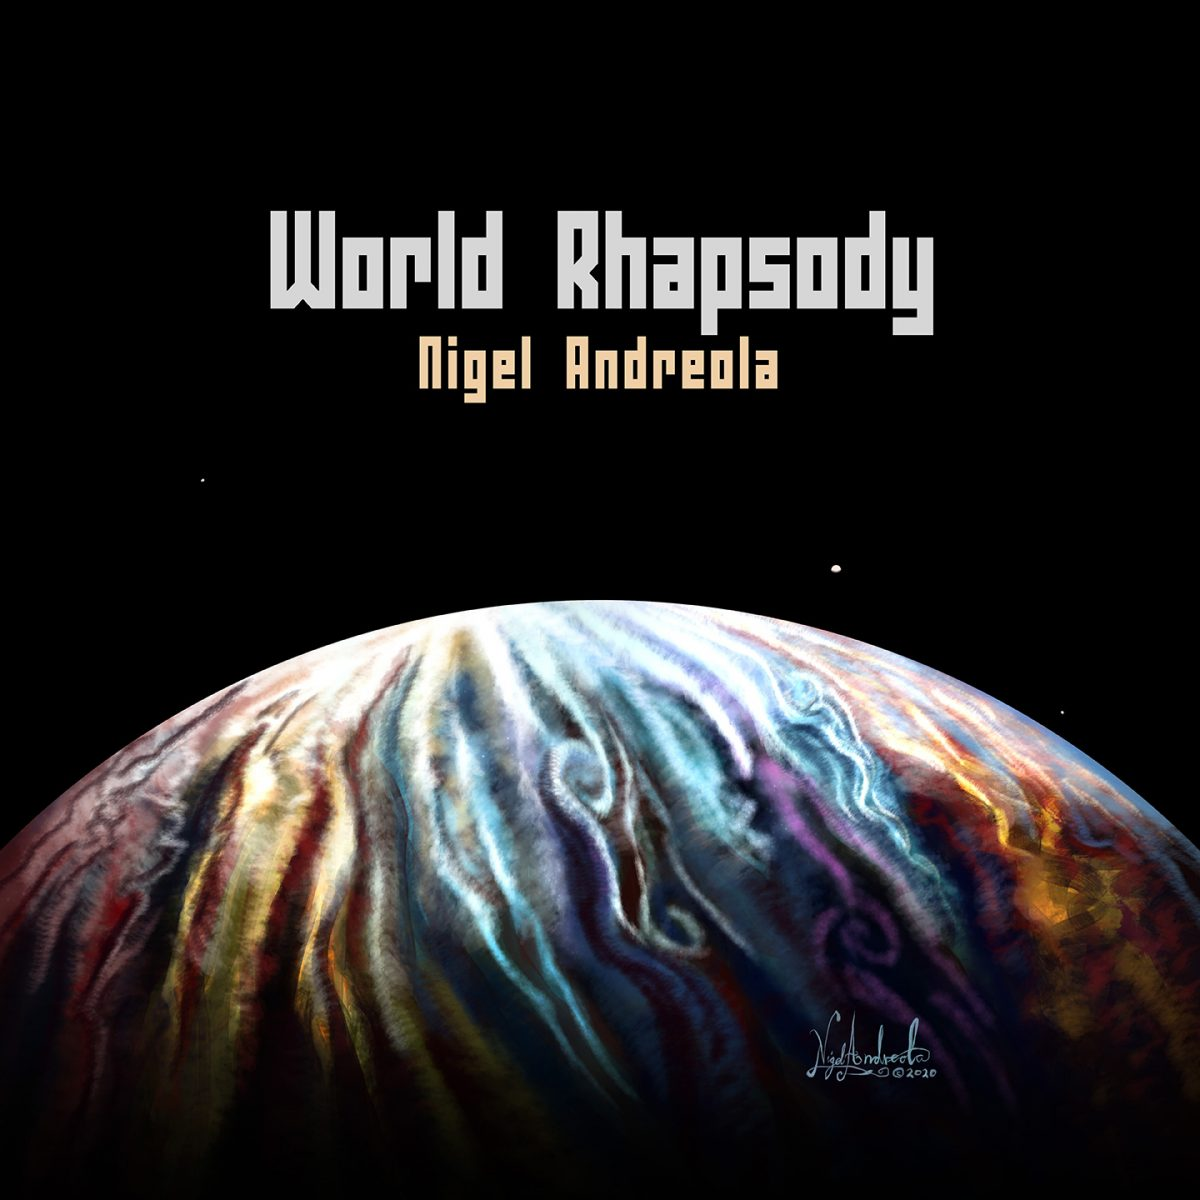 World Rhapsody by Nigel Andreola